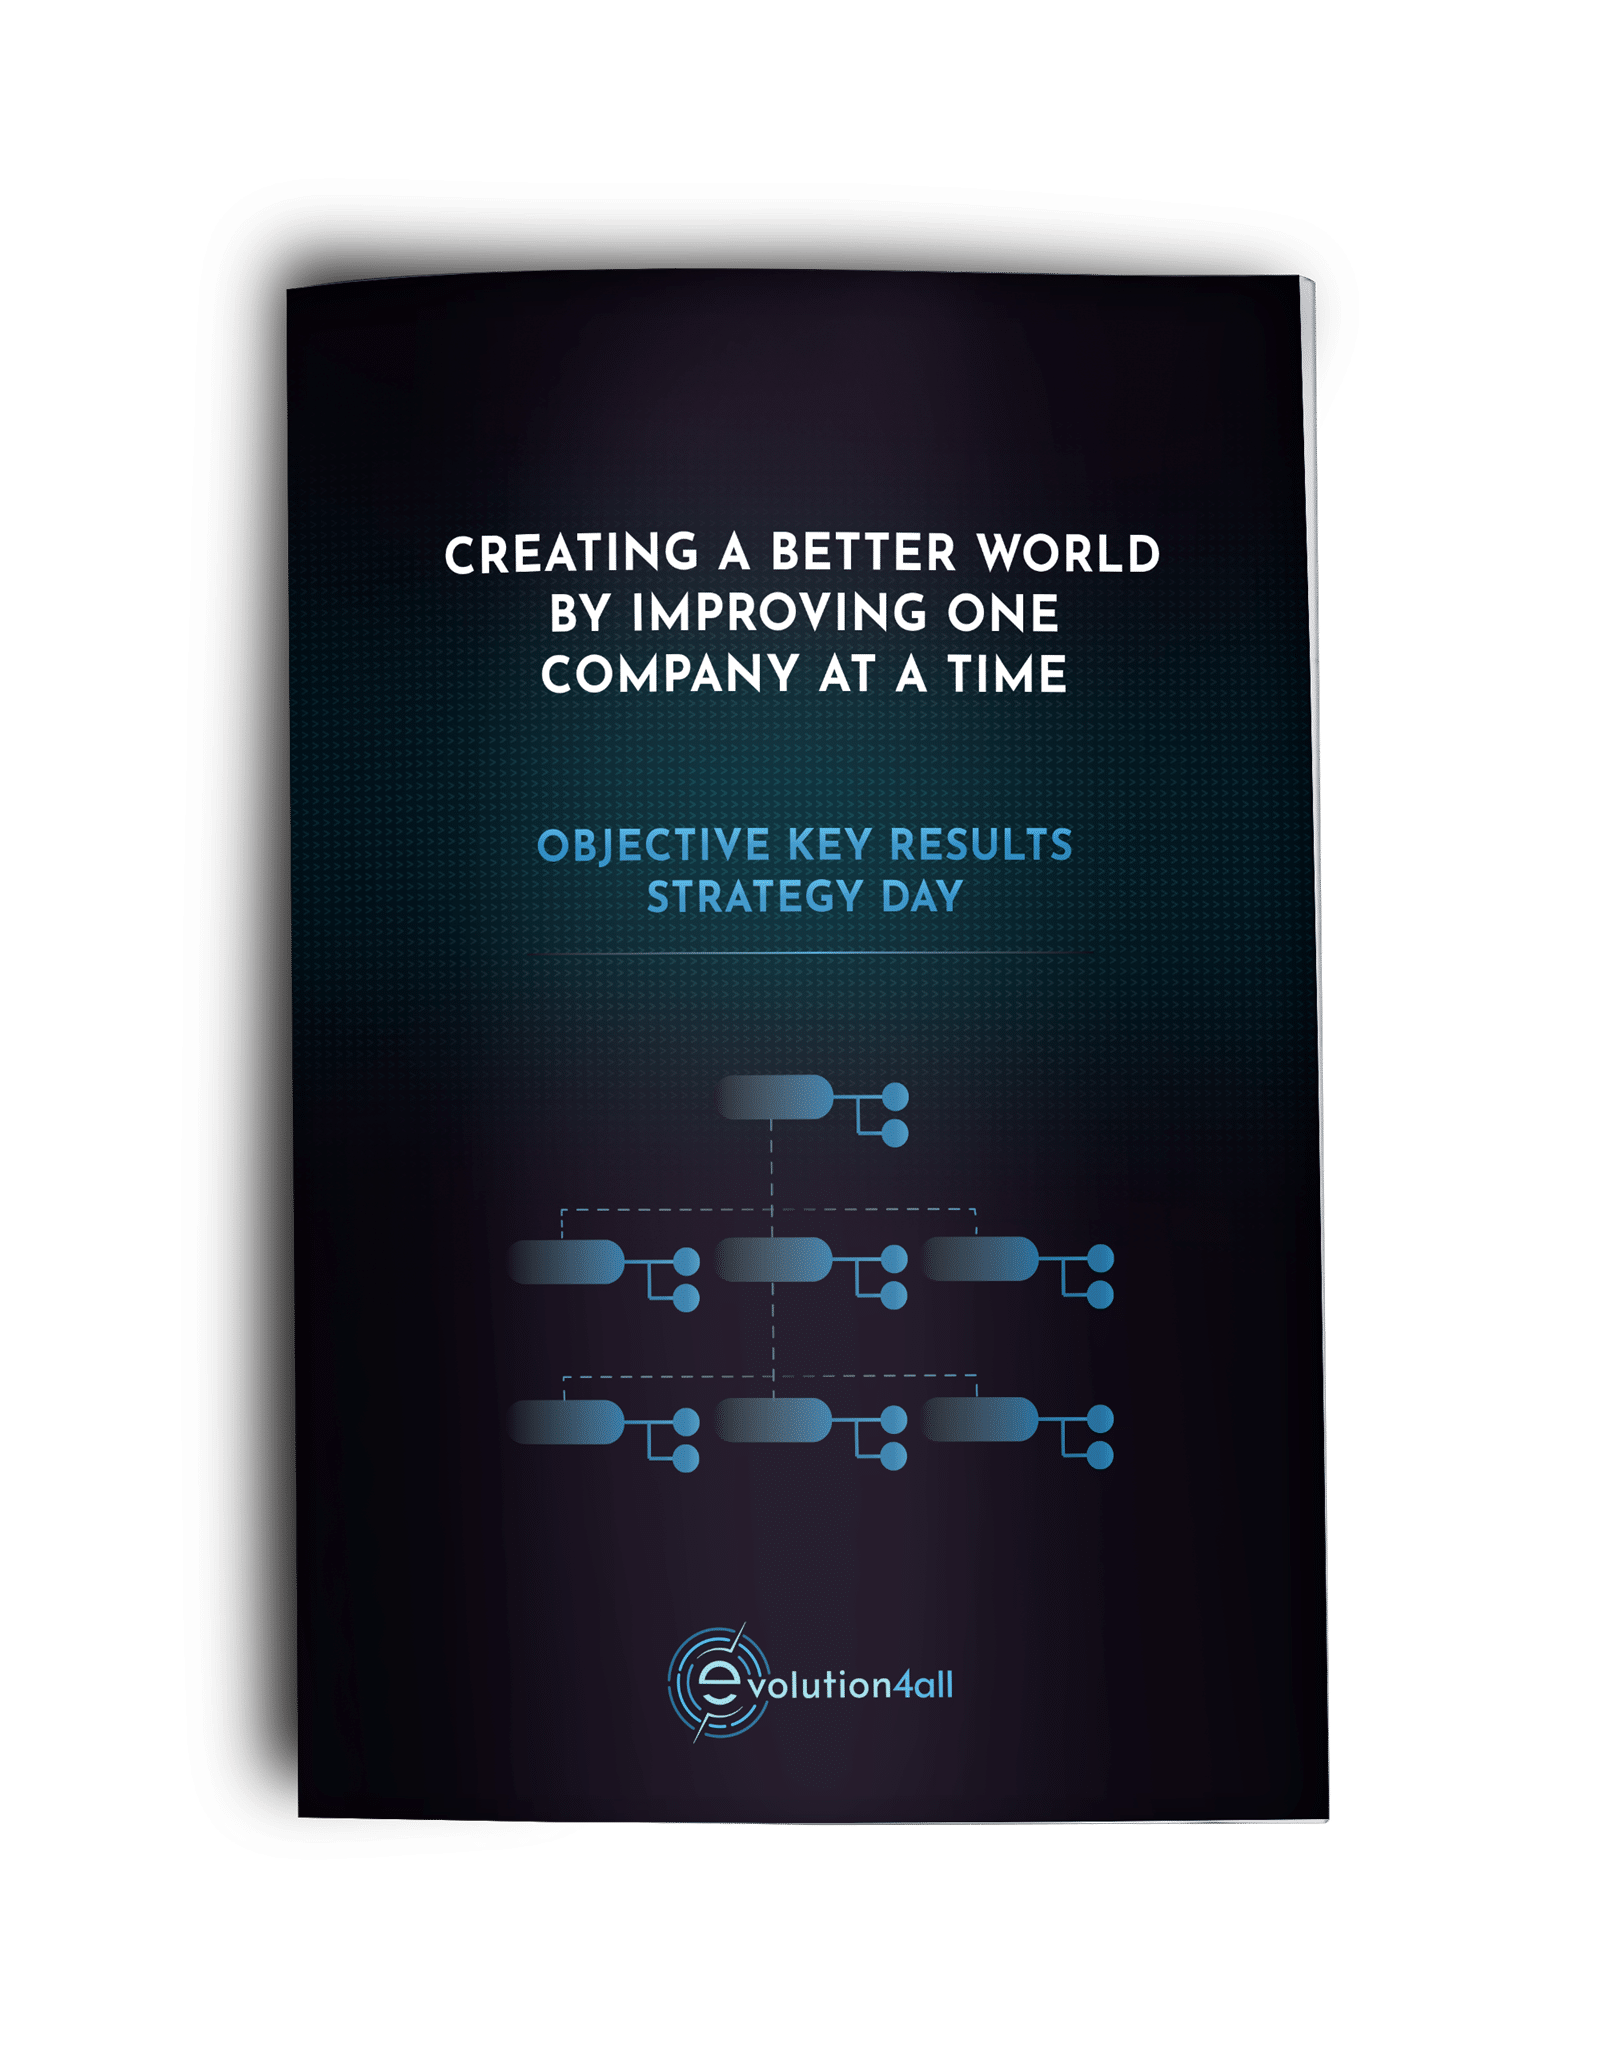 OBJECTIVES KEY RESULTS STRATEGY SESSION